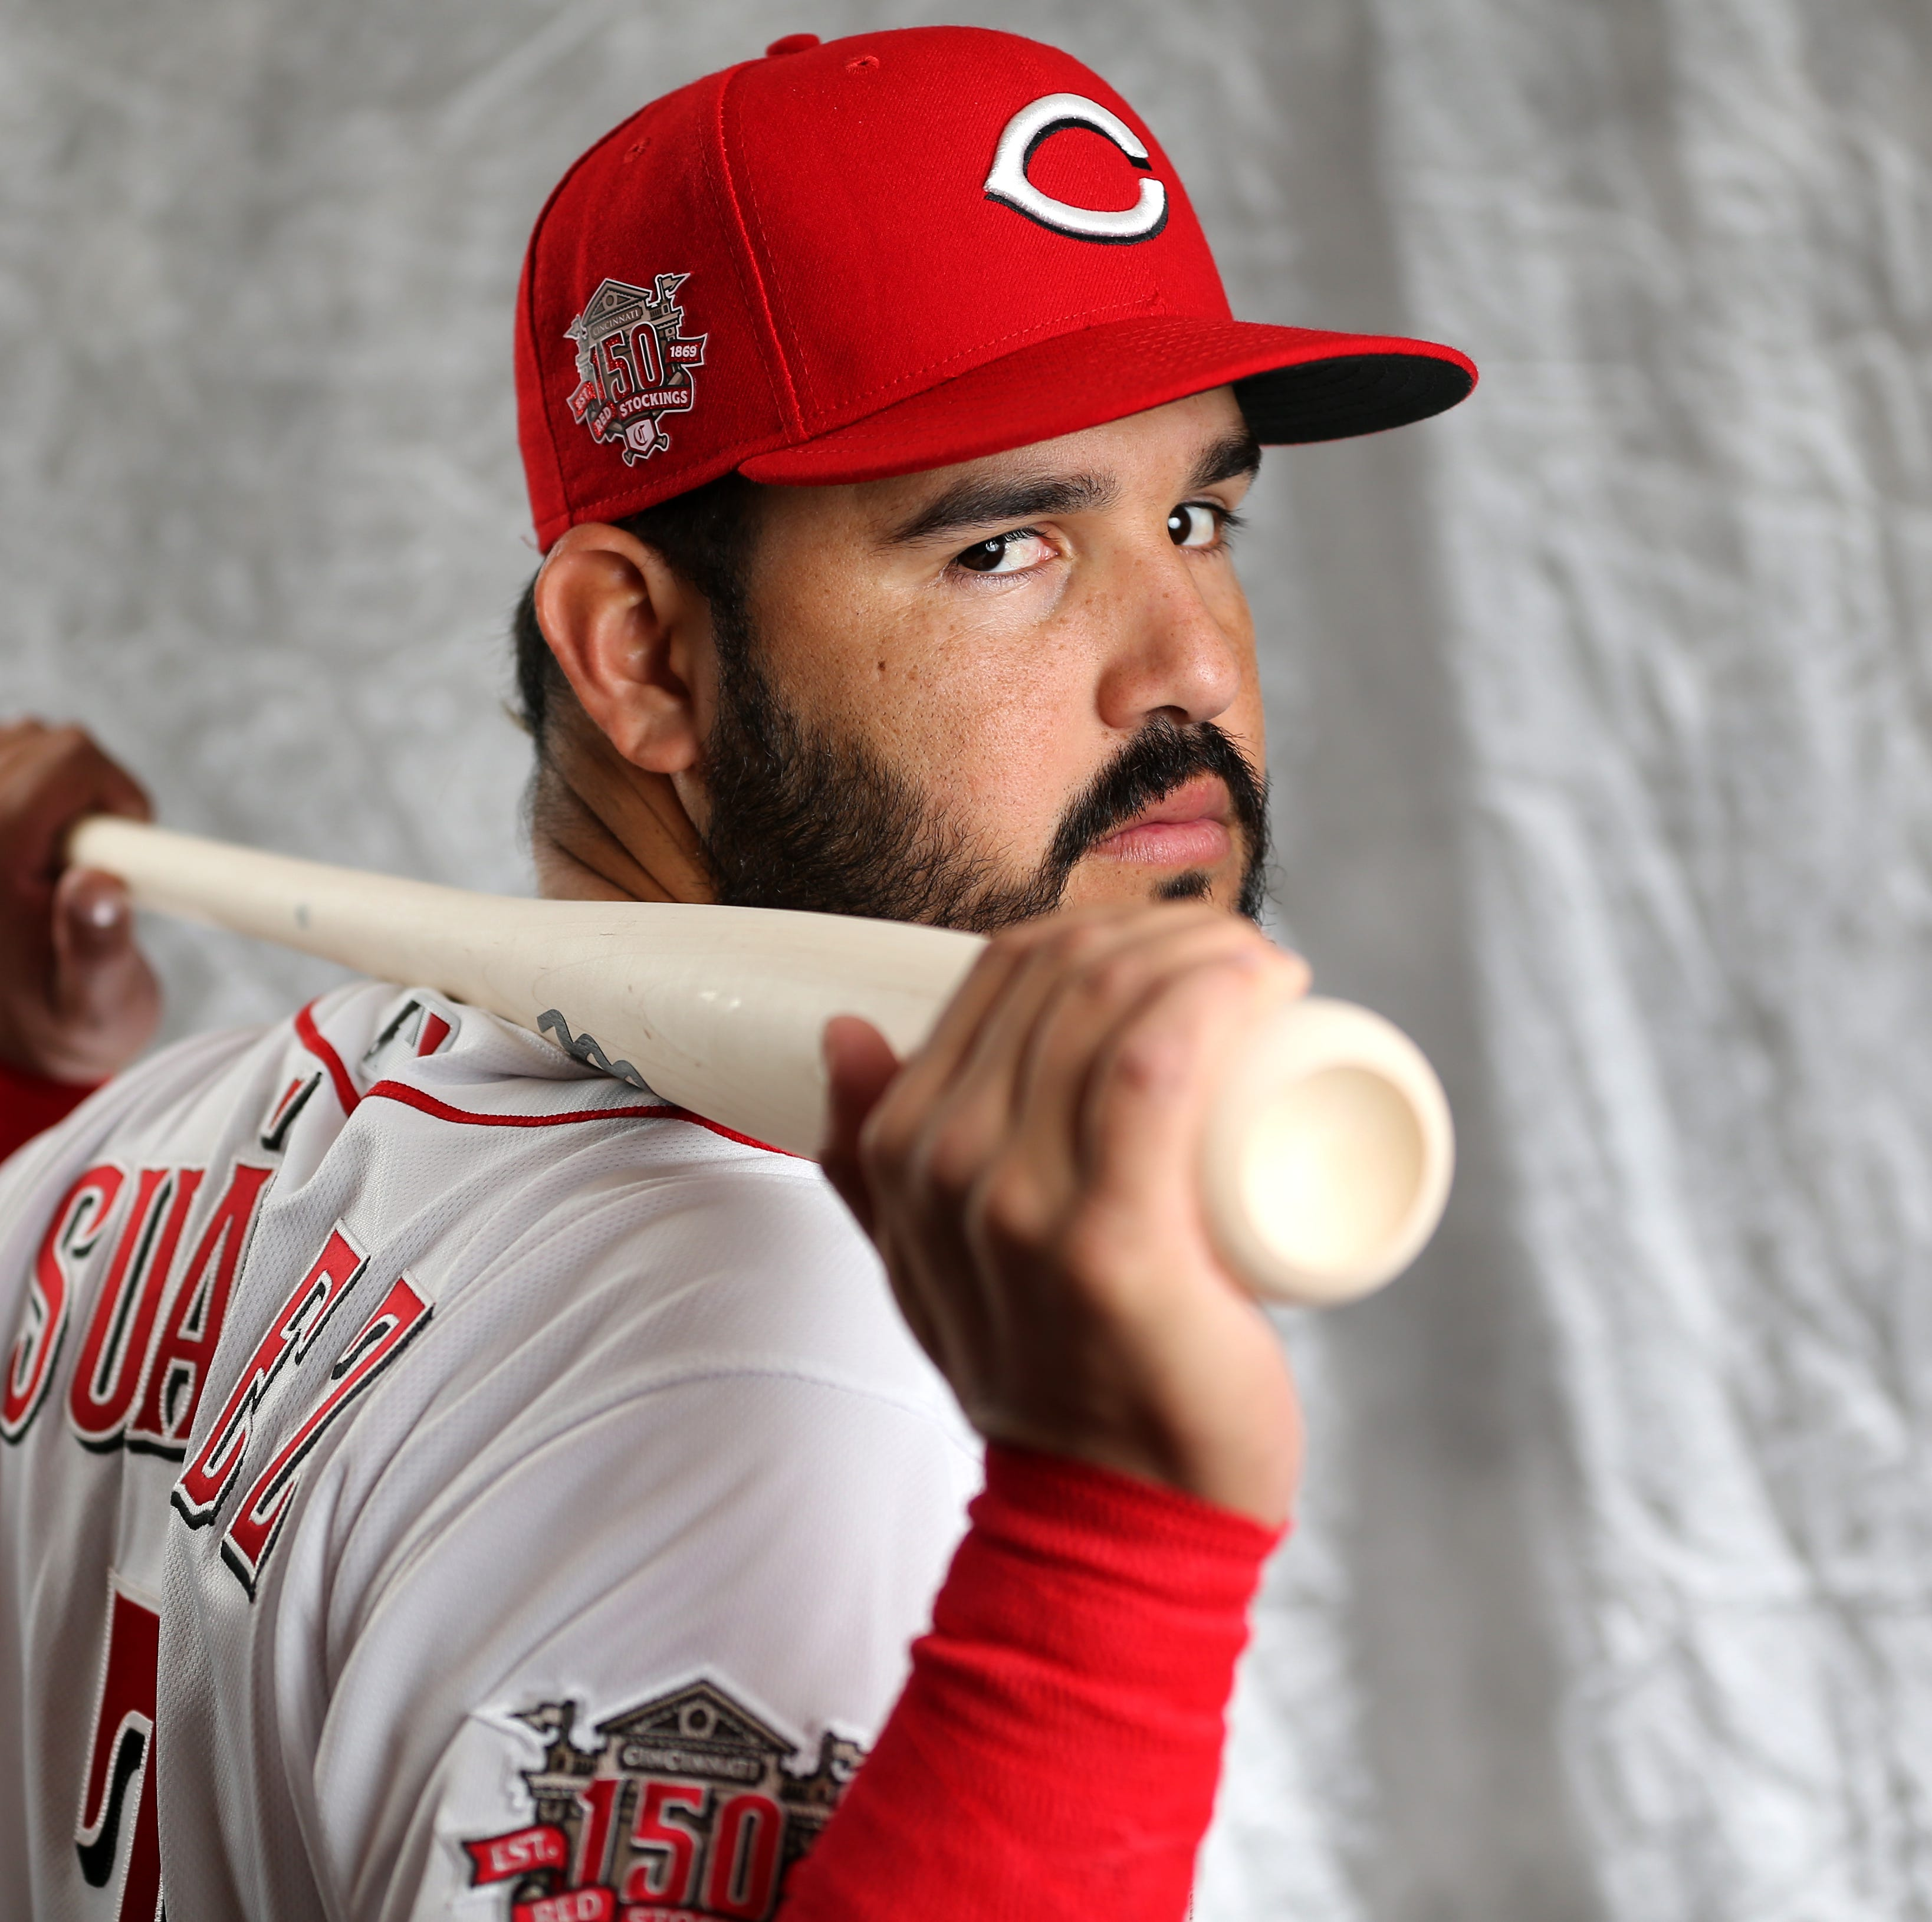 Venezuela is never far from minds of Cincinnati Reds players Eugenio Suárez, José Peraza